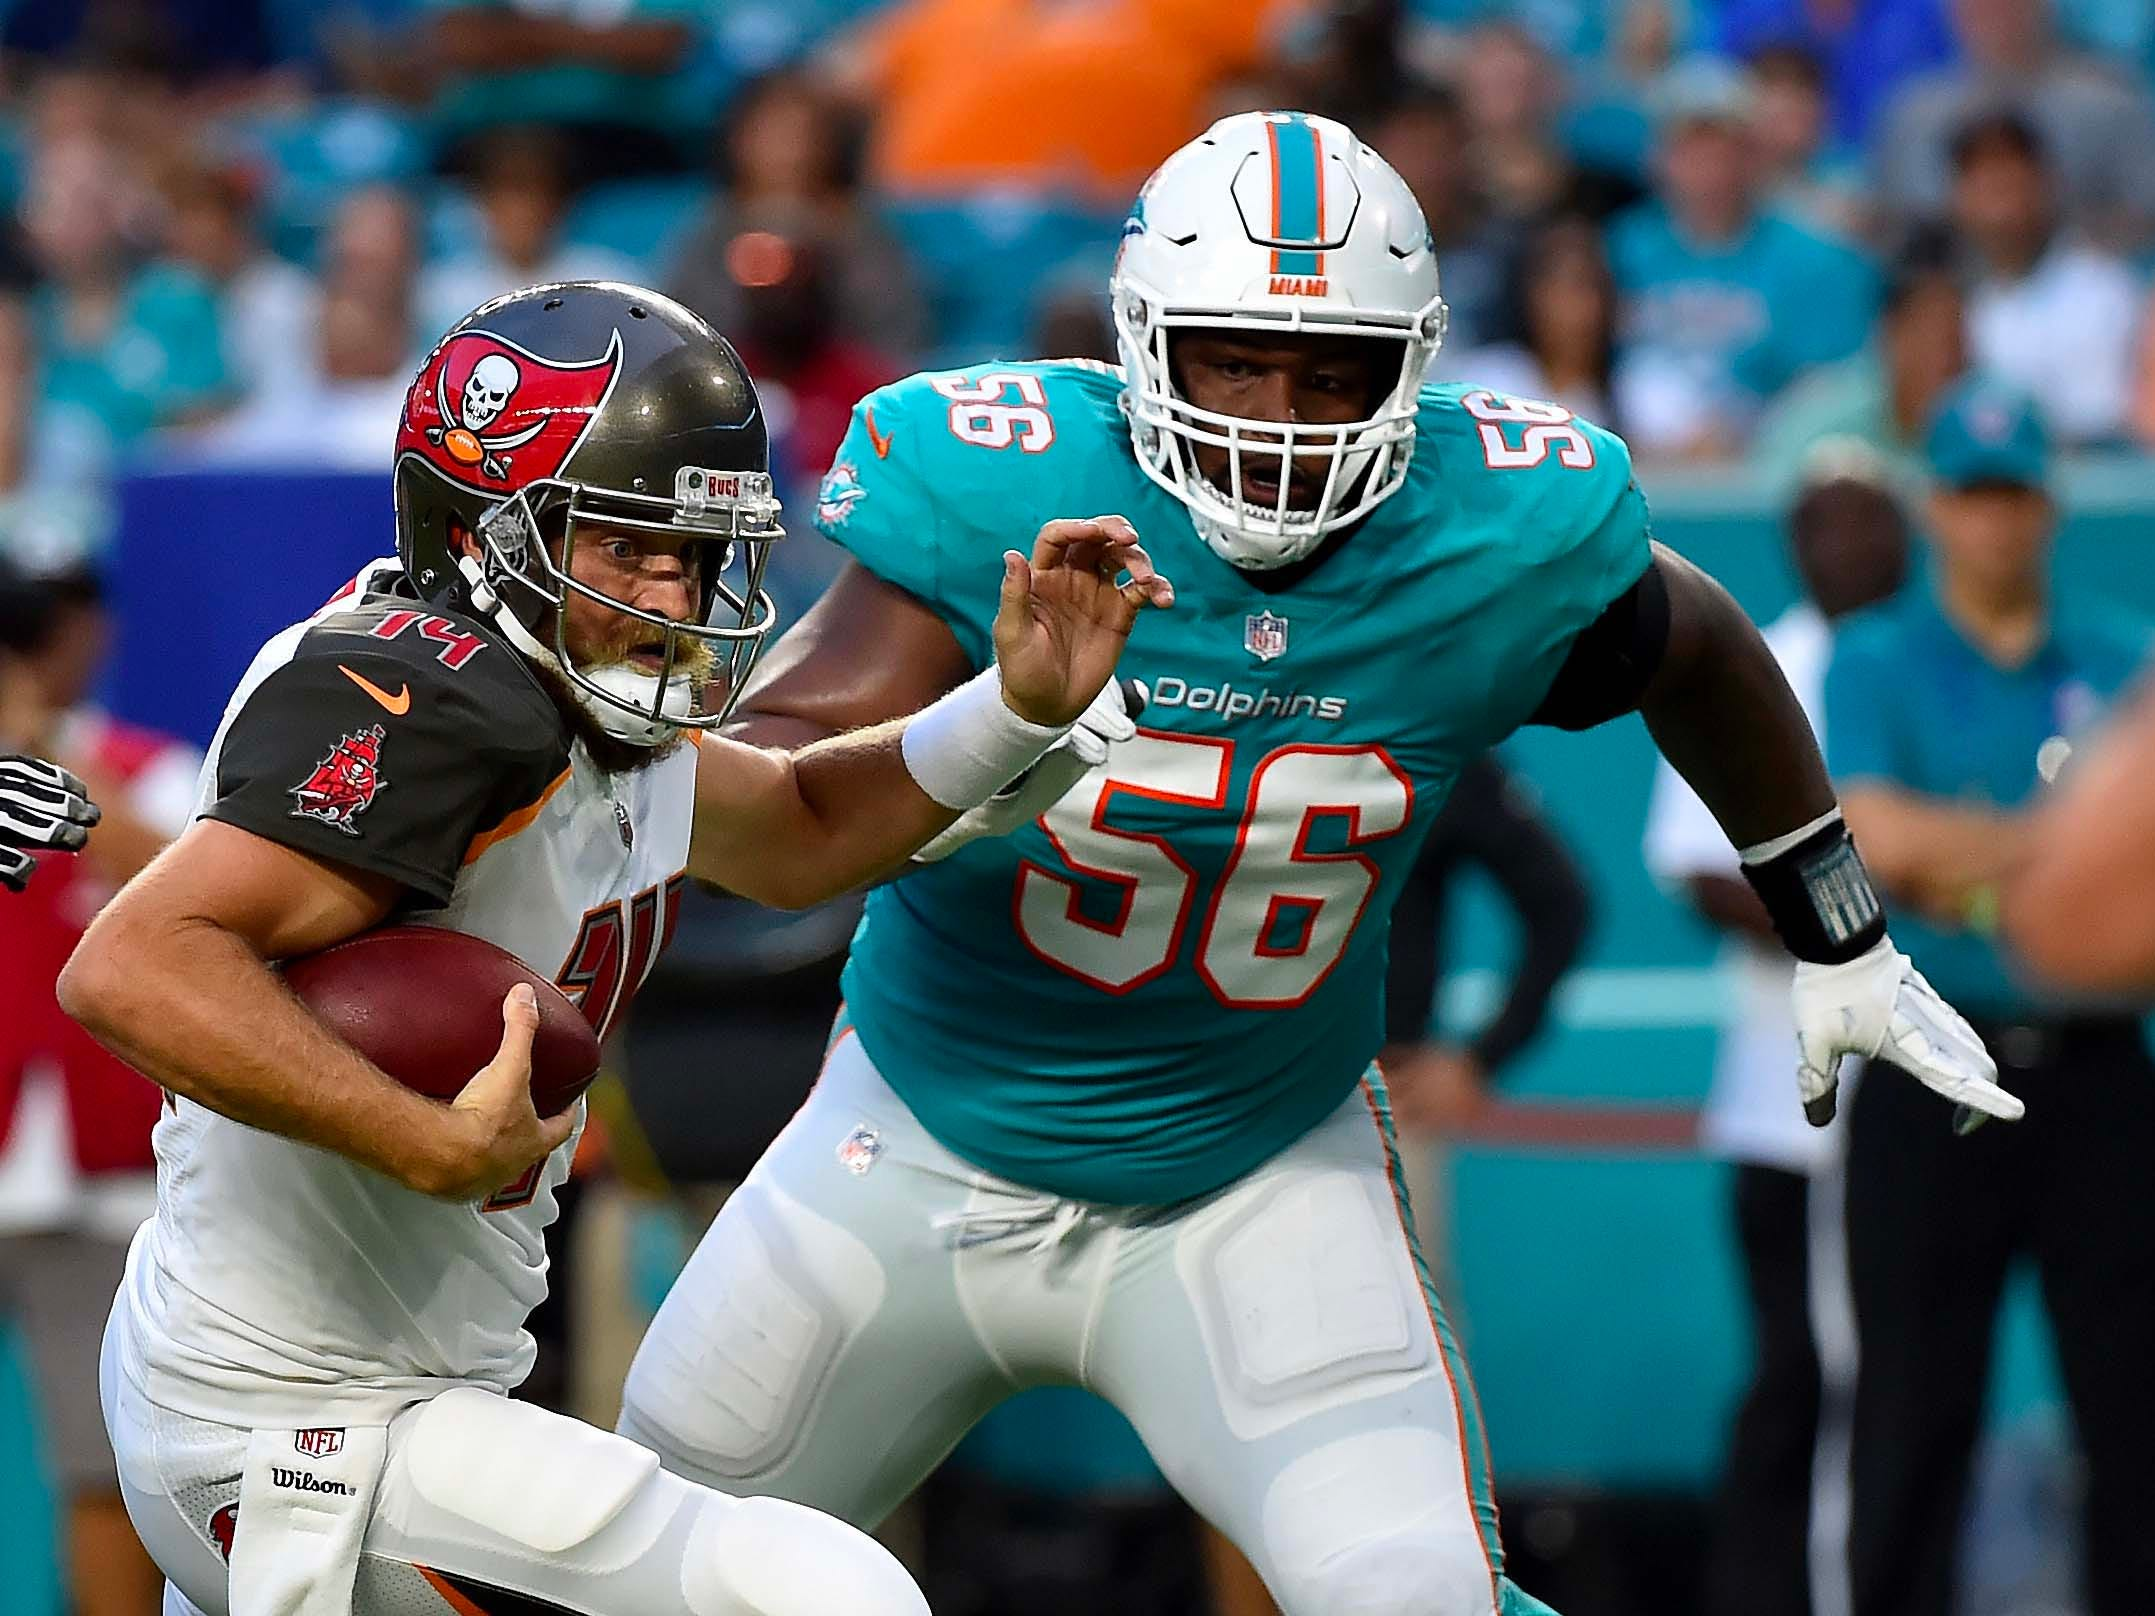 Miami Dolphins defensive tackle Davon Godchaux (56) closes in on Tampa Bay Buccaneers quarterback Ryan Fitzpatrick during the first half at Hard Rock Stadium.